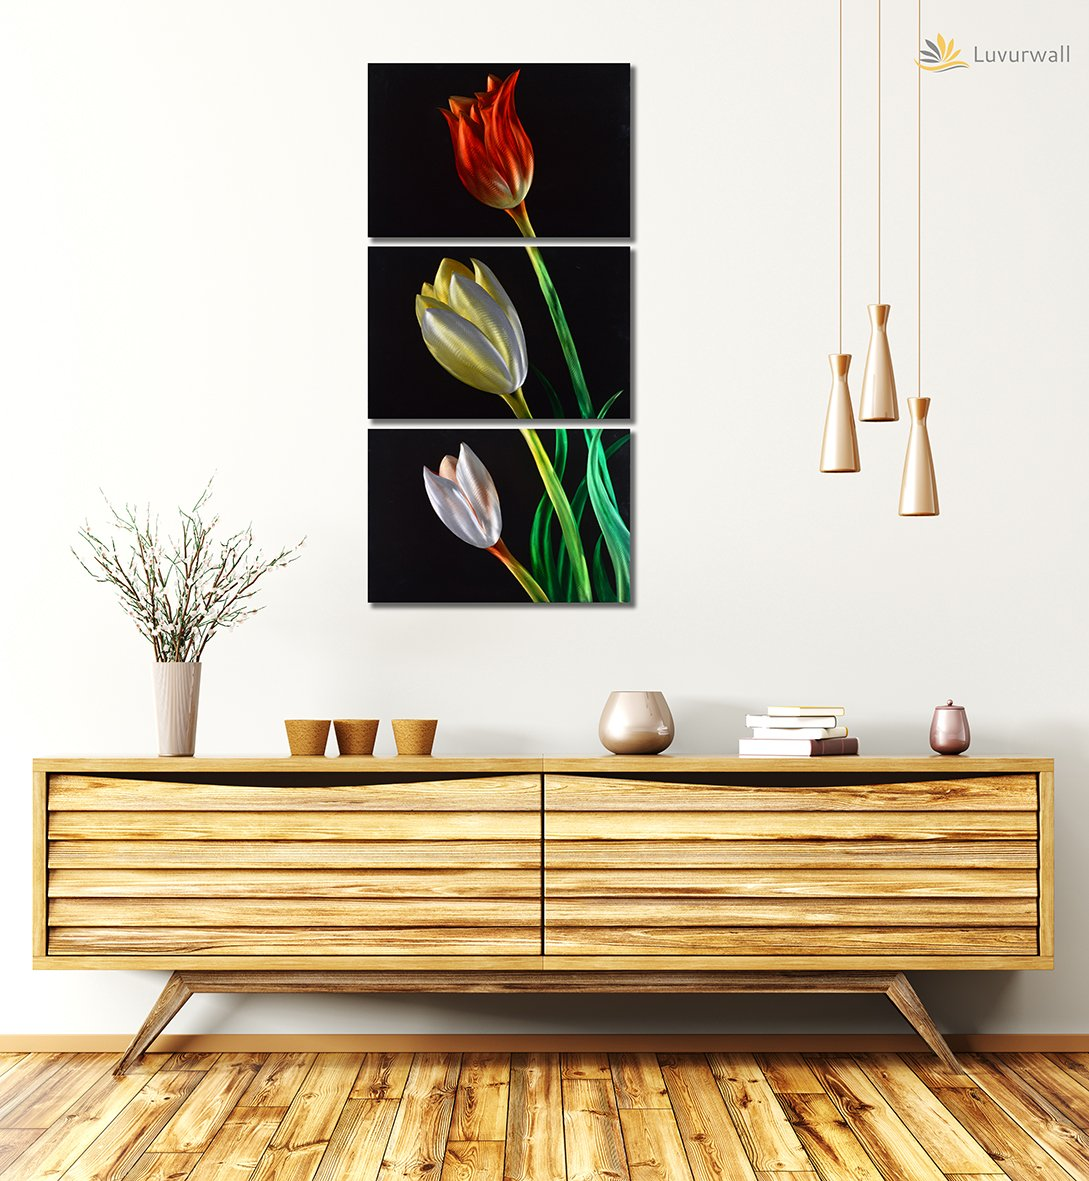 Luvurwall 3 Panel Multi Colored Flower Metal Wall Art, Metal Wall Art - Luvurwall